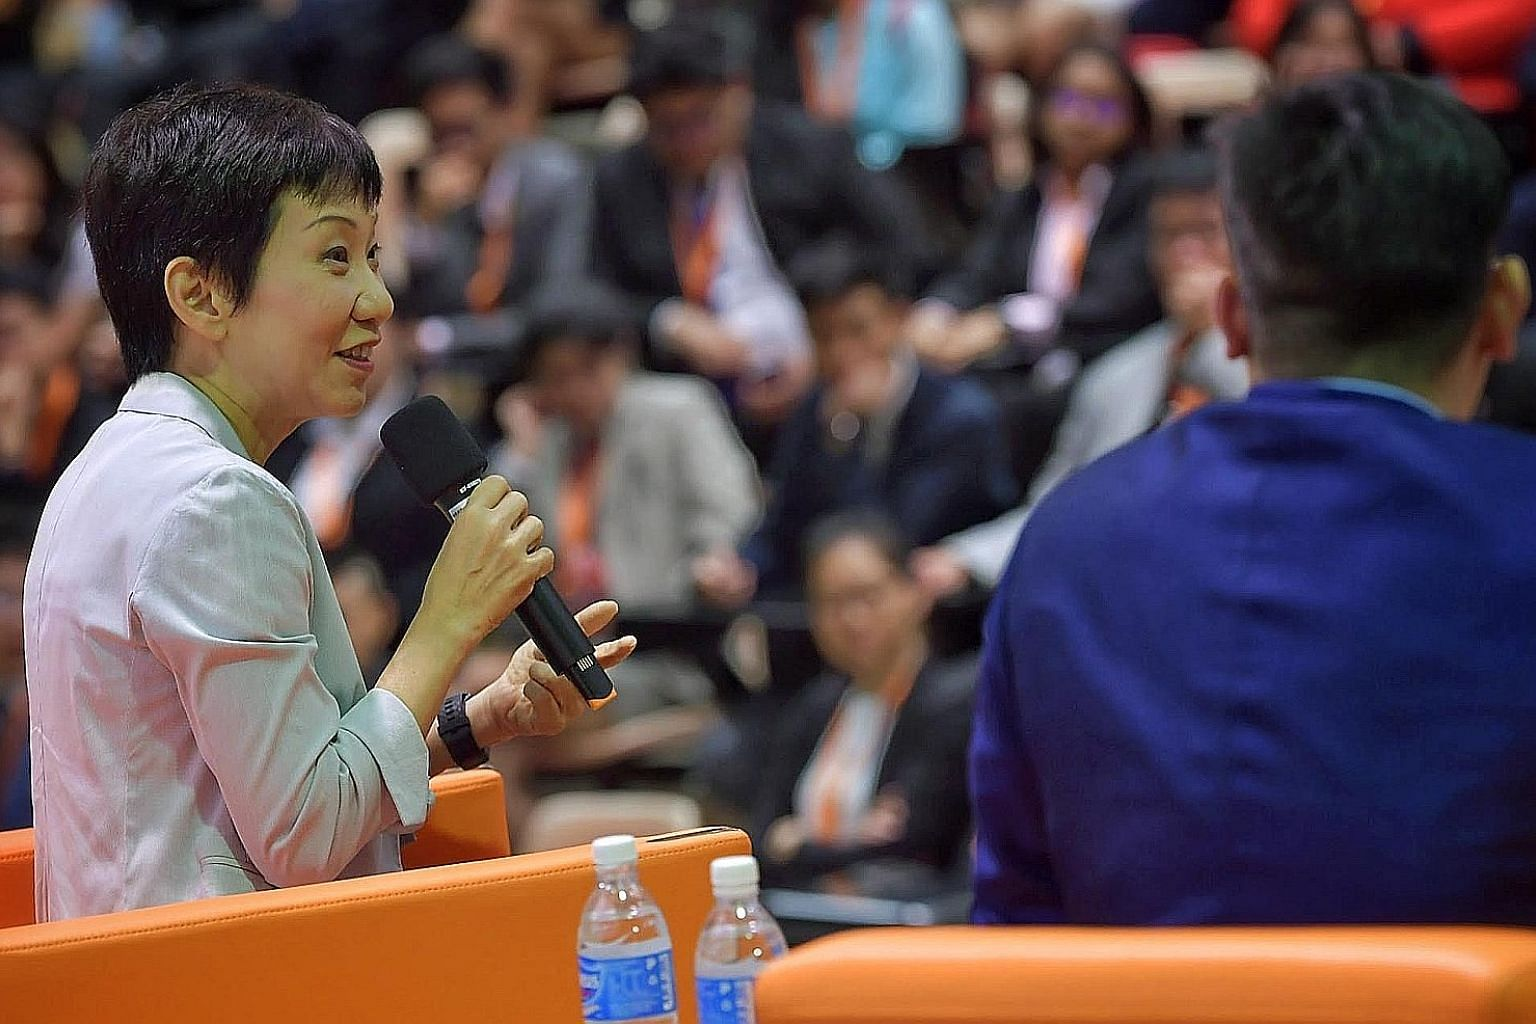 Minister for Culture, Community and Youth Grace Fu speaking to students at a dialogue on race relations during the OnePeople.sg Model United Nations opening ceremony at Yishun Innova Junior College yesterday.